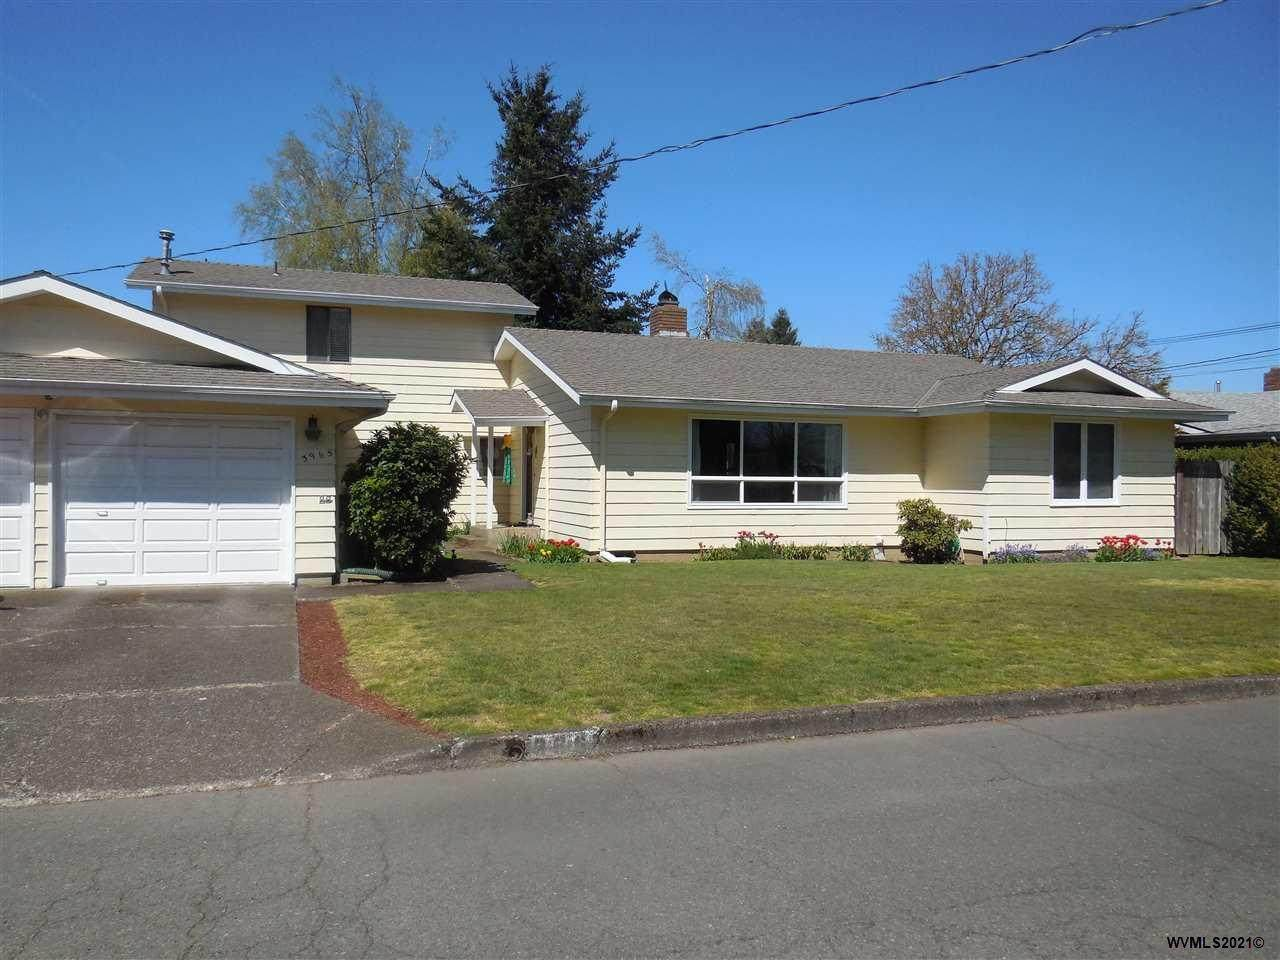 3965 Munkers St - Photo 1